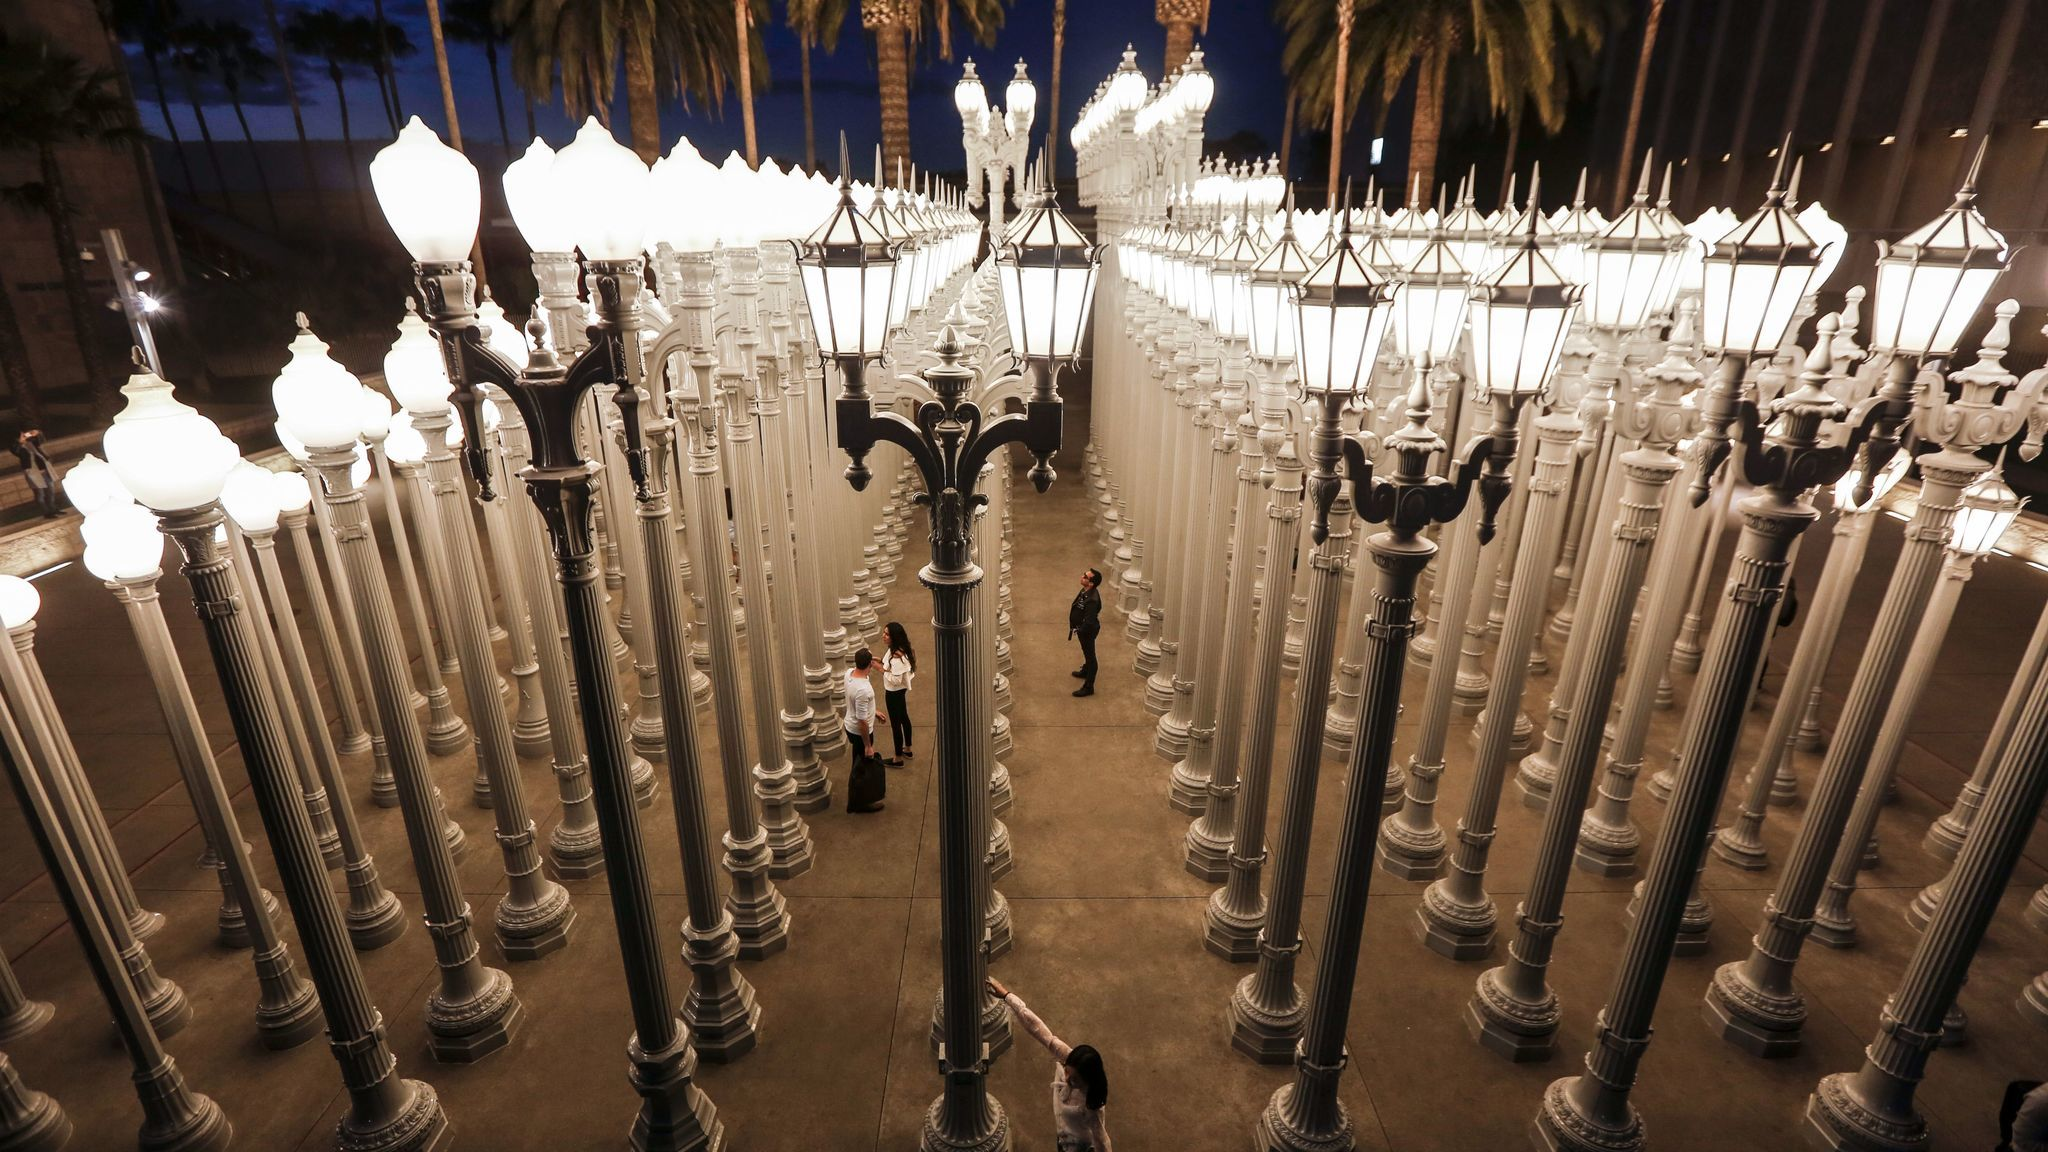 Urban Light Has 202 Street Lamps The Total Number Of Bulbs Is 309 Because Some Lampposts Have Two Globes Maria Alejandra Cardona Los Angeles Times